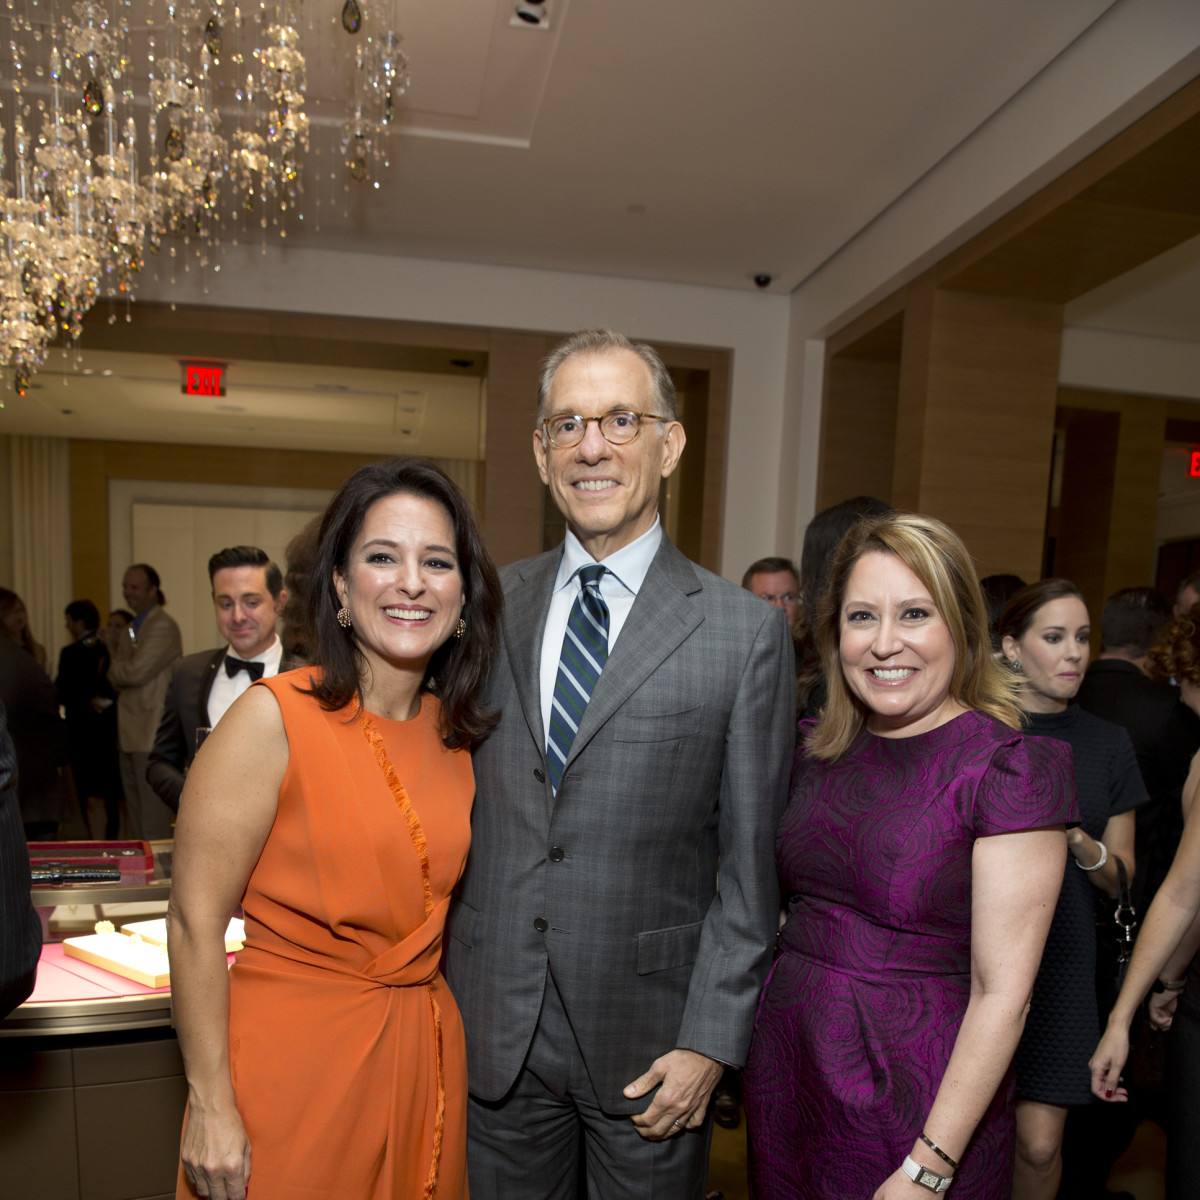 News, Shelby, Cartier opening, Oct. 2015, Mercedes Abramo, Gary Tinterow, Kari Gonzales